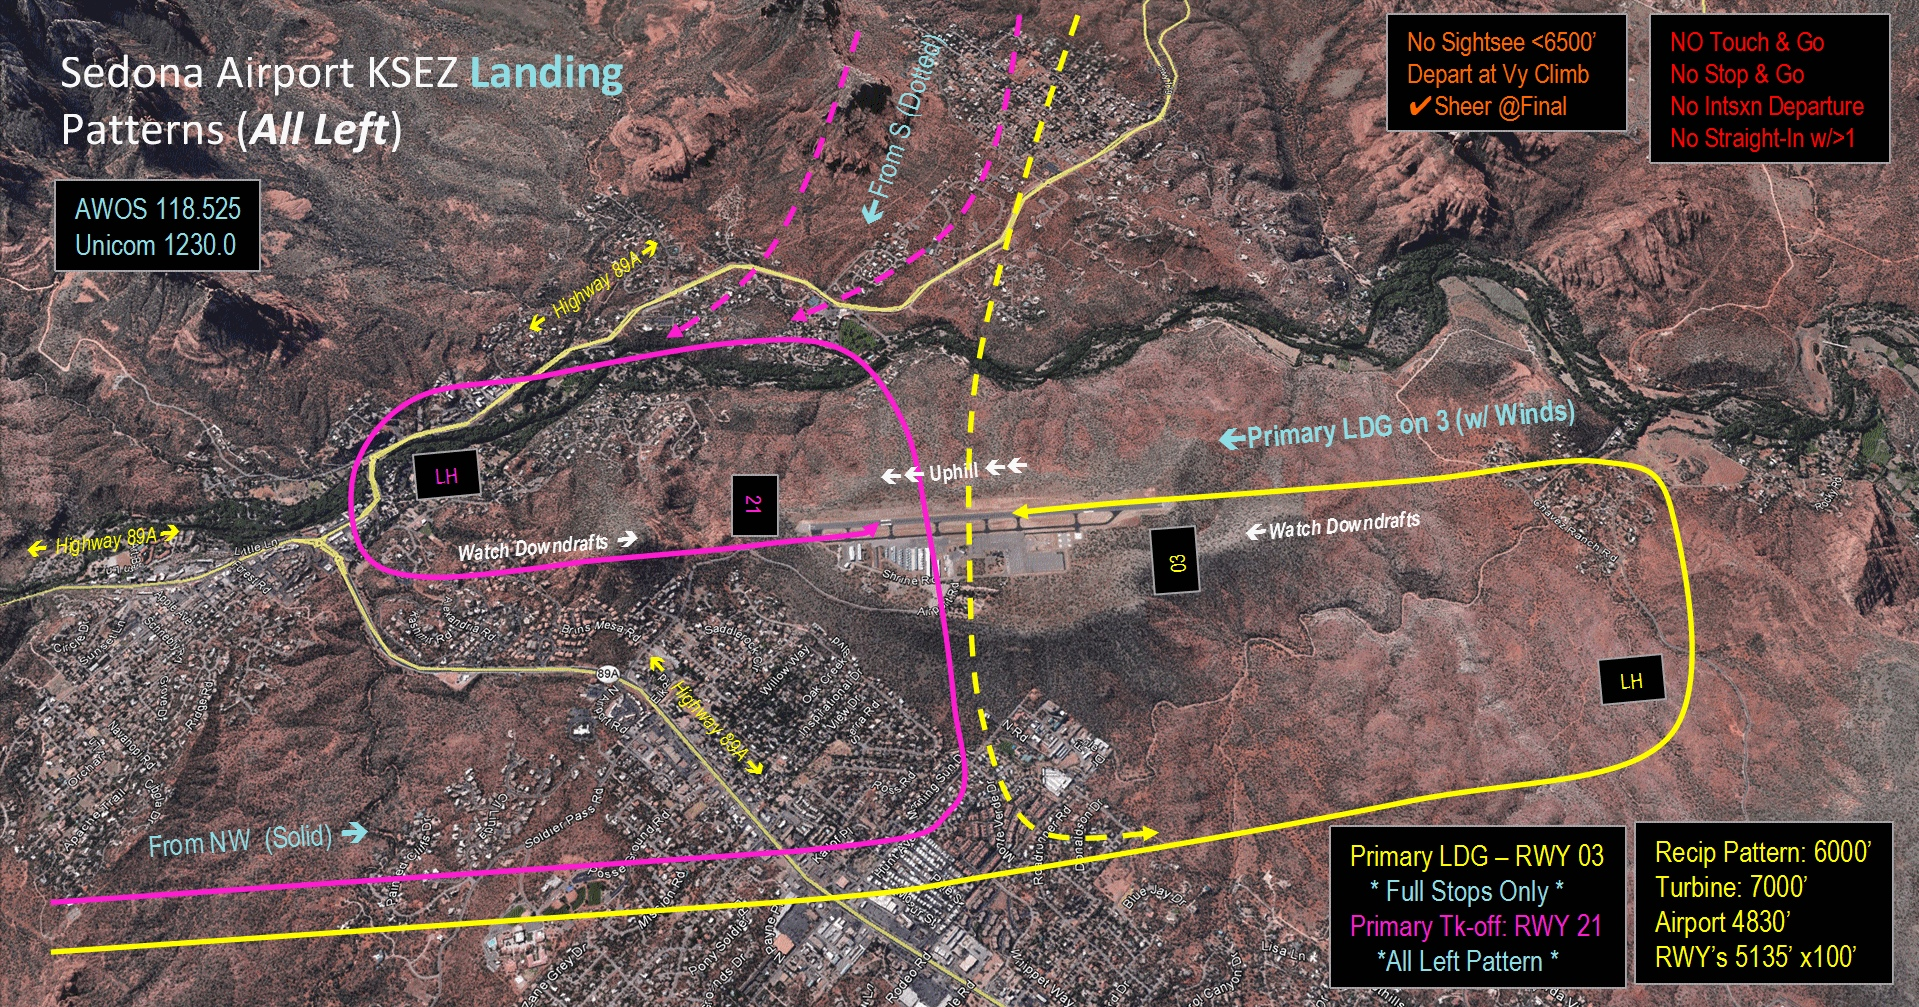 Landing Procedures and Pattern for KSEZ from North and South - CLICK for Noise Abatement Procedures